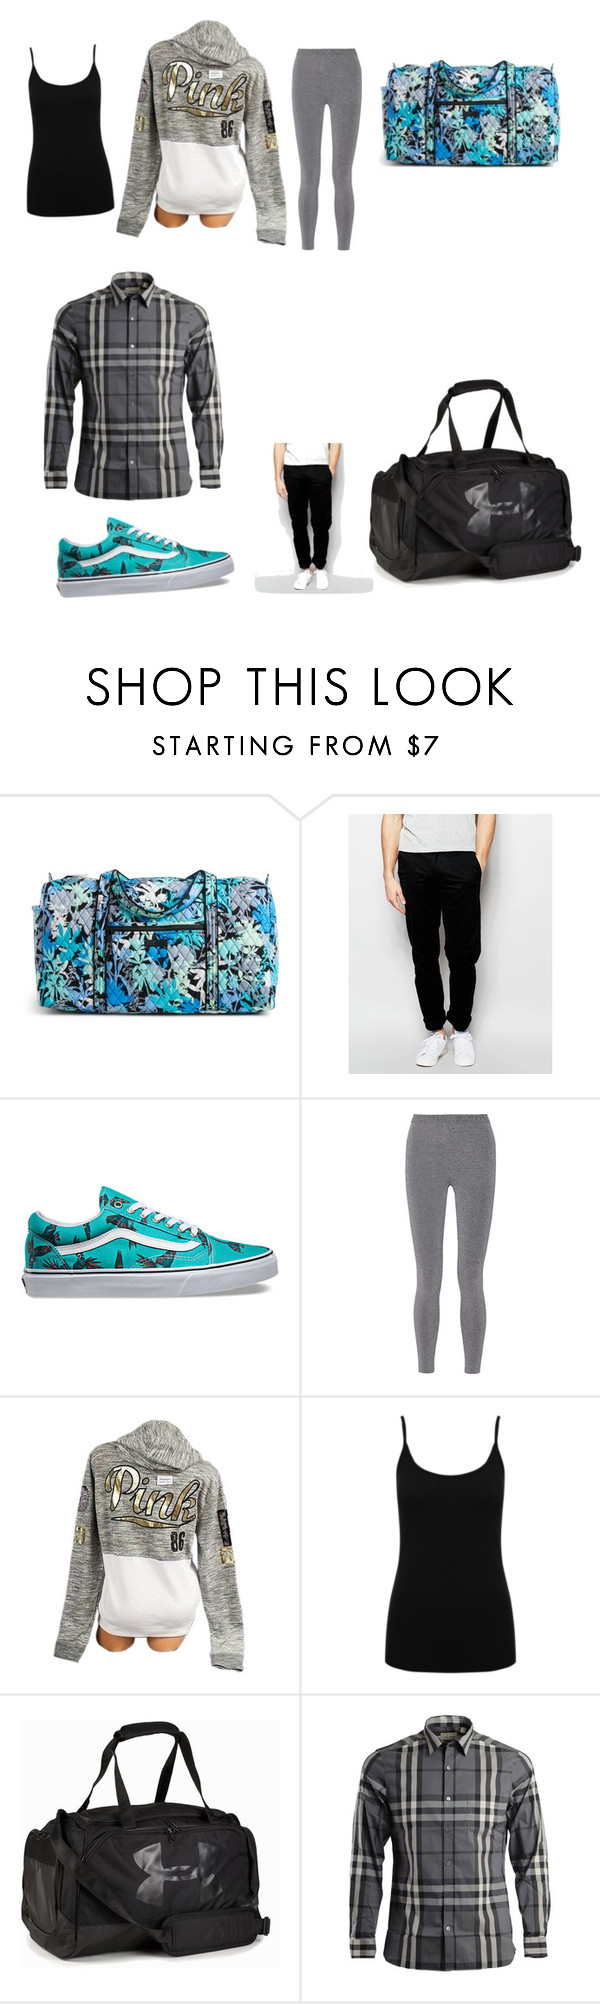 """Traveling with Louis"" by hazzajelly on Polyvore featuring Vera Bradley, Farah, Vans, T By Alexander Wang, Victoria's Secret, M&Co, Under Armour and Burberry"